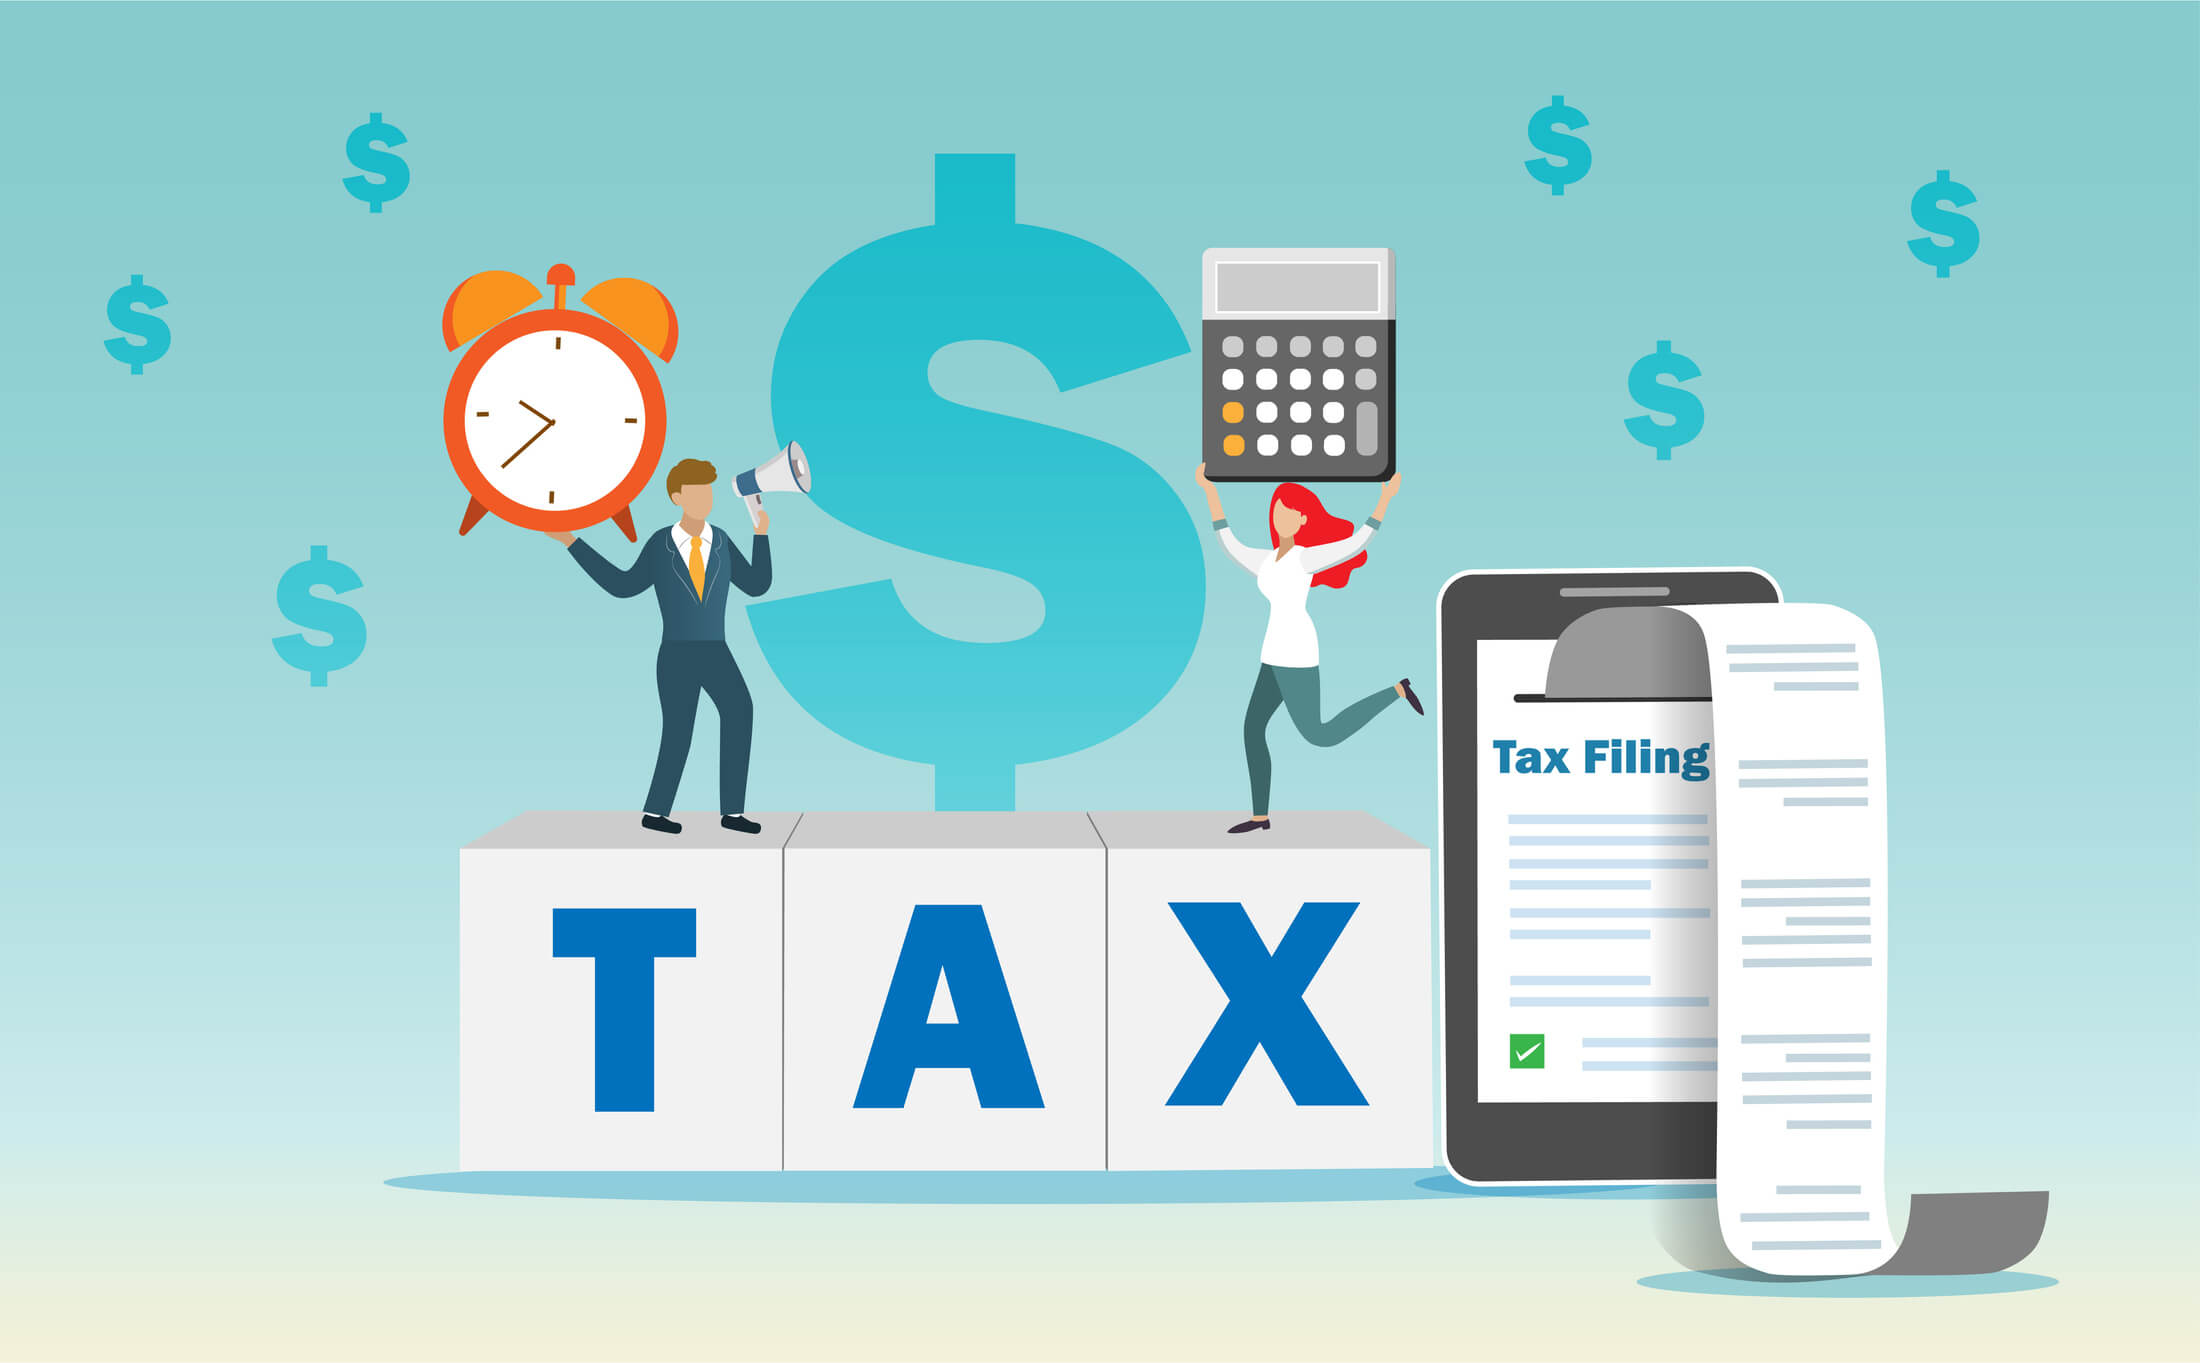 Filing Taxes for Free - Complete Controller